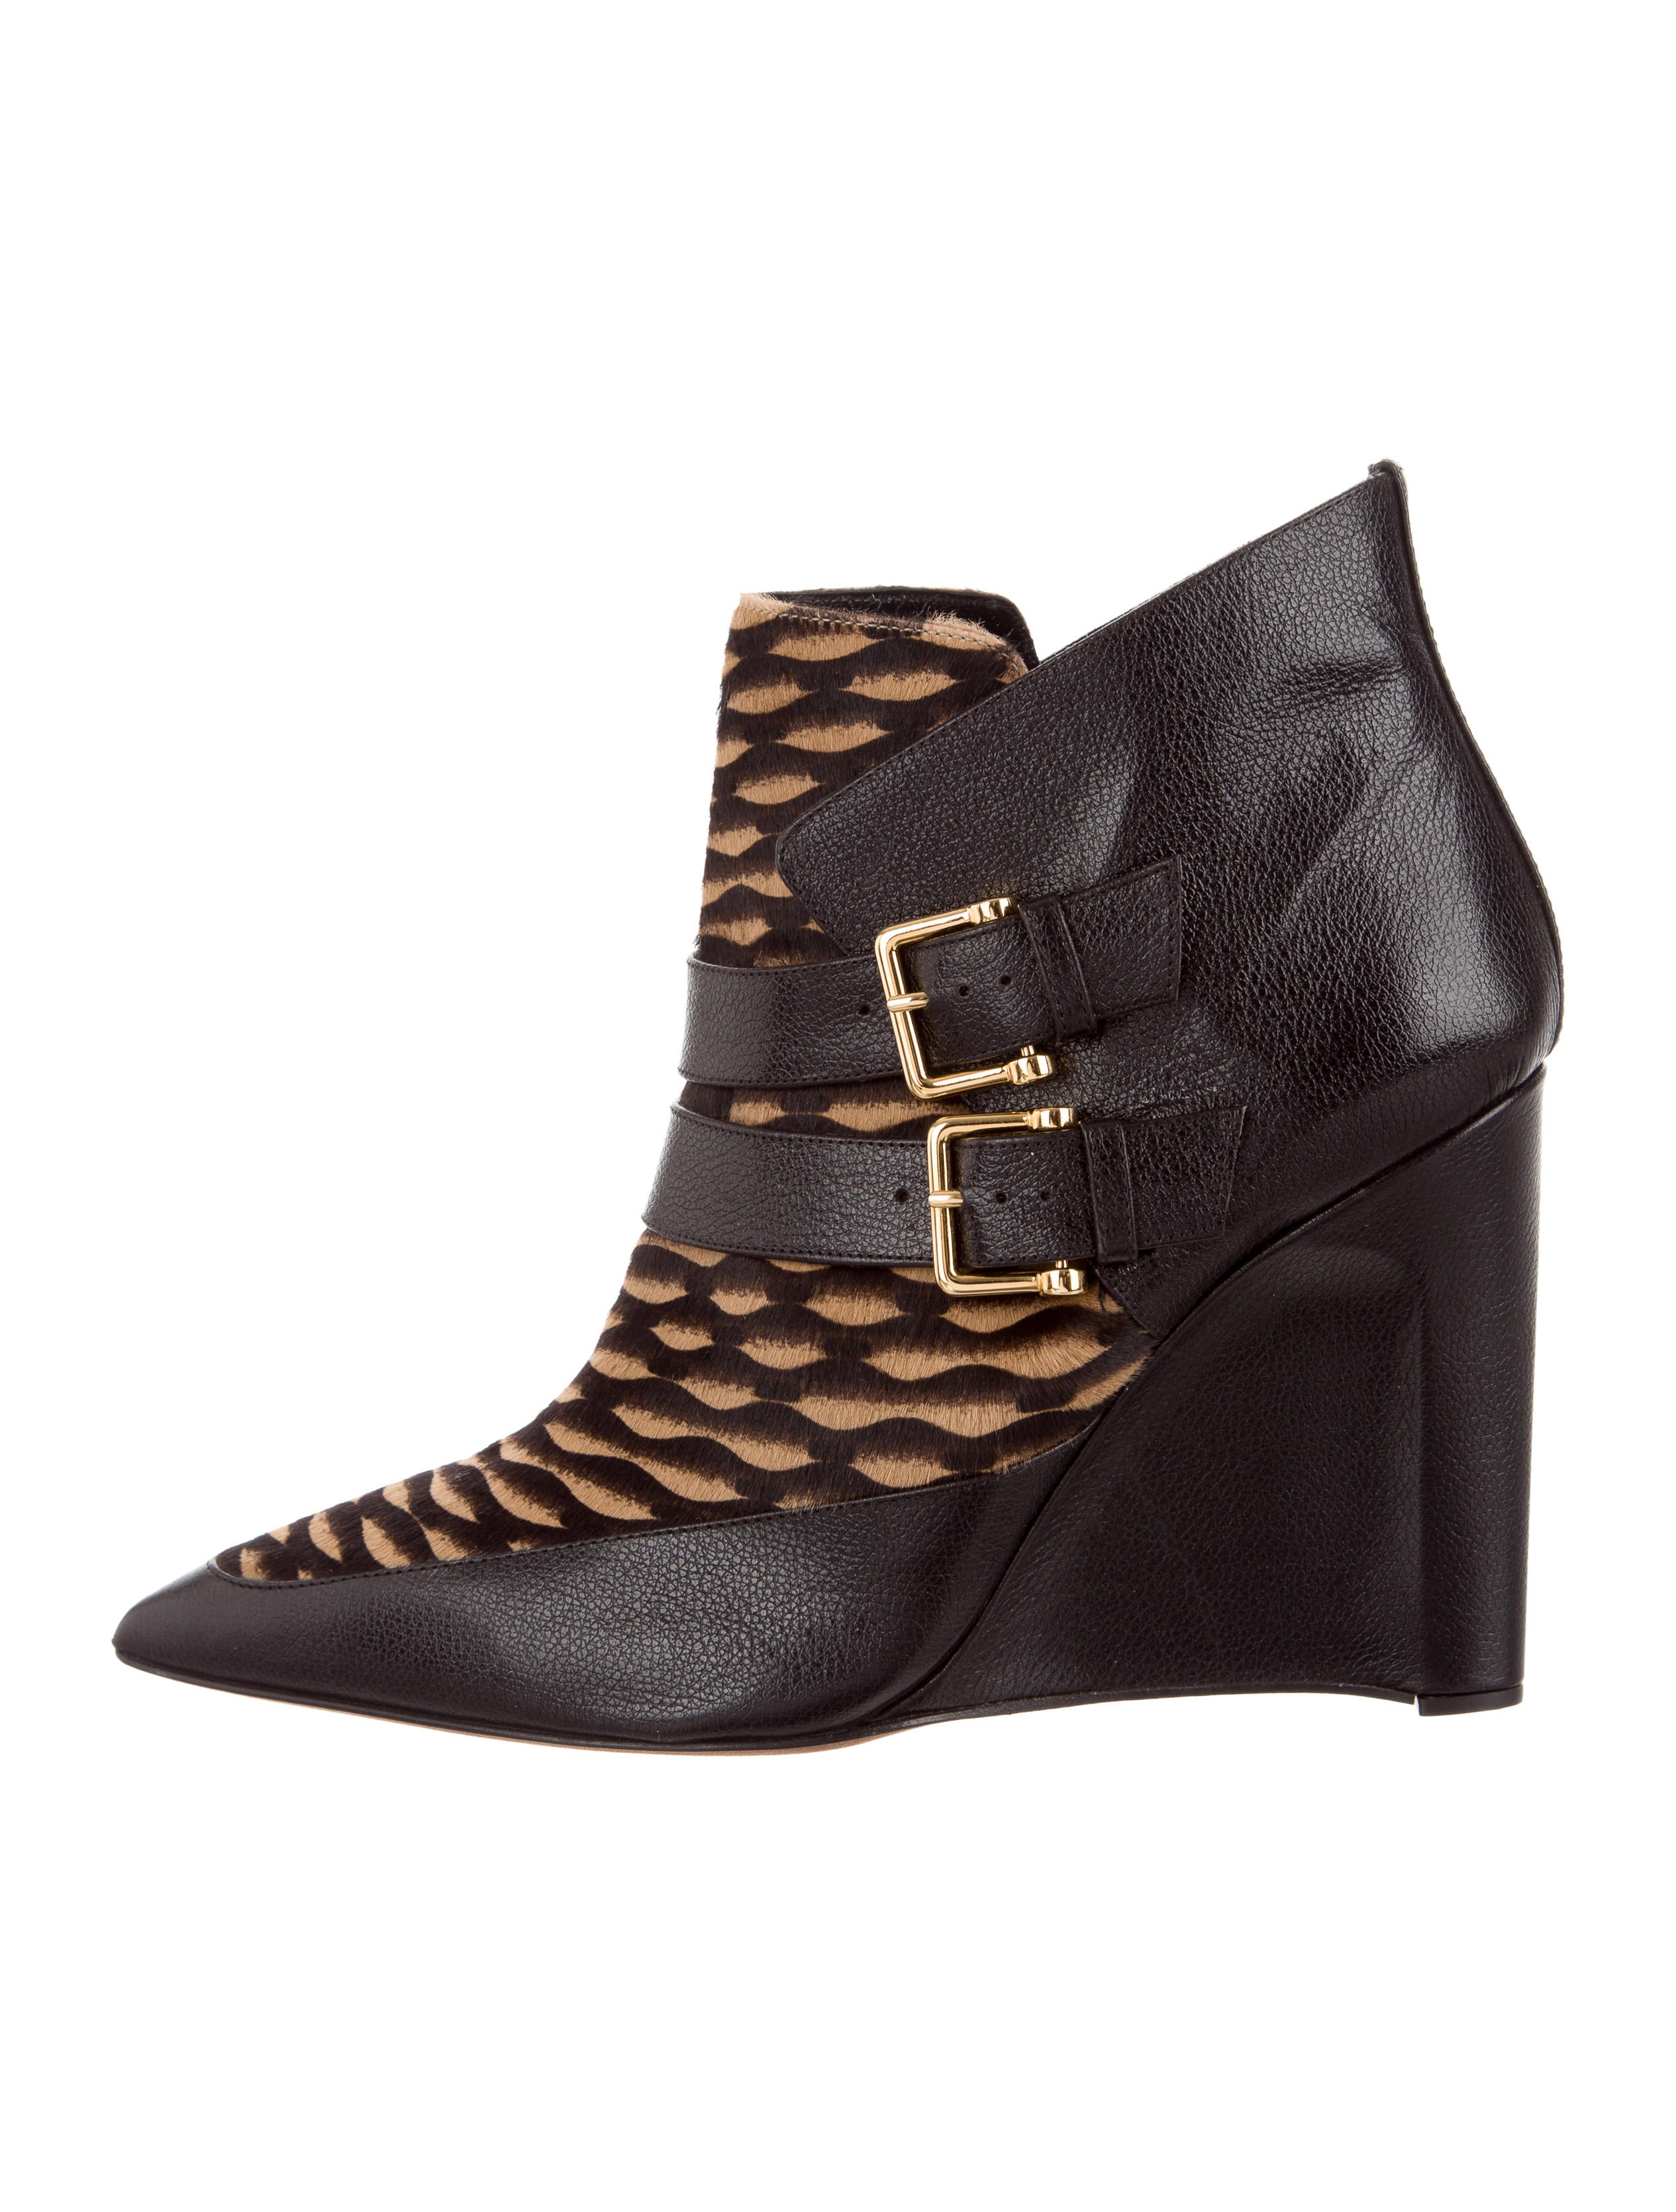 Derek Lam Marta Wedge Boots w/ Tags outlet official site buy cheap Inexpensive best store to get sale online low cost for sale F5WHcL